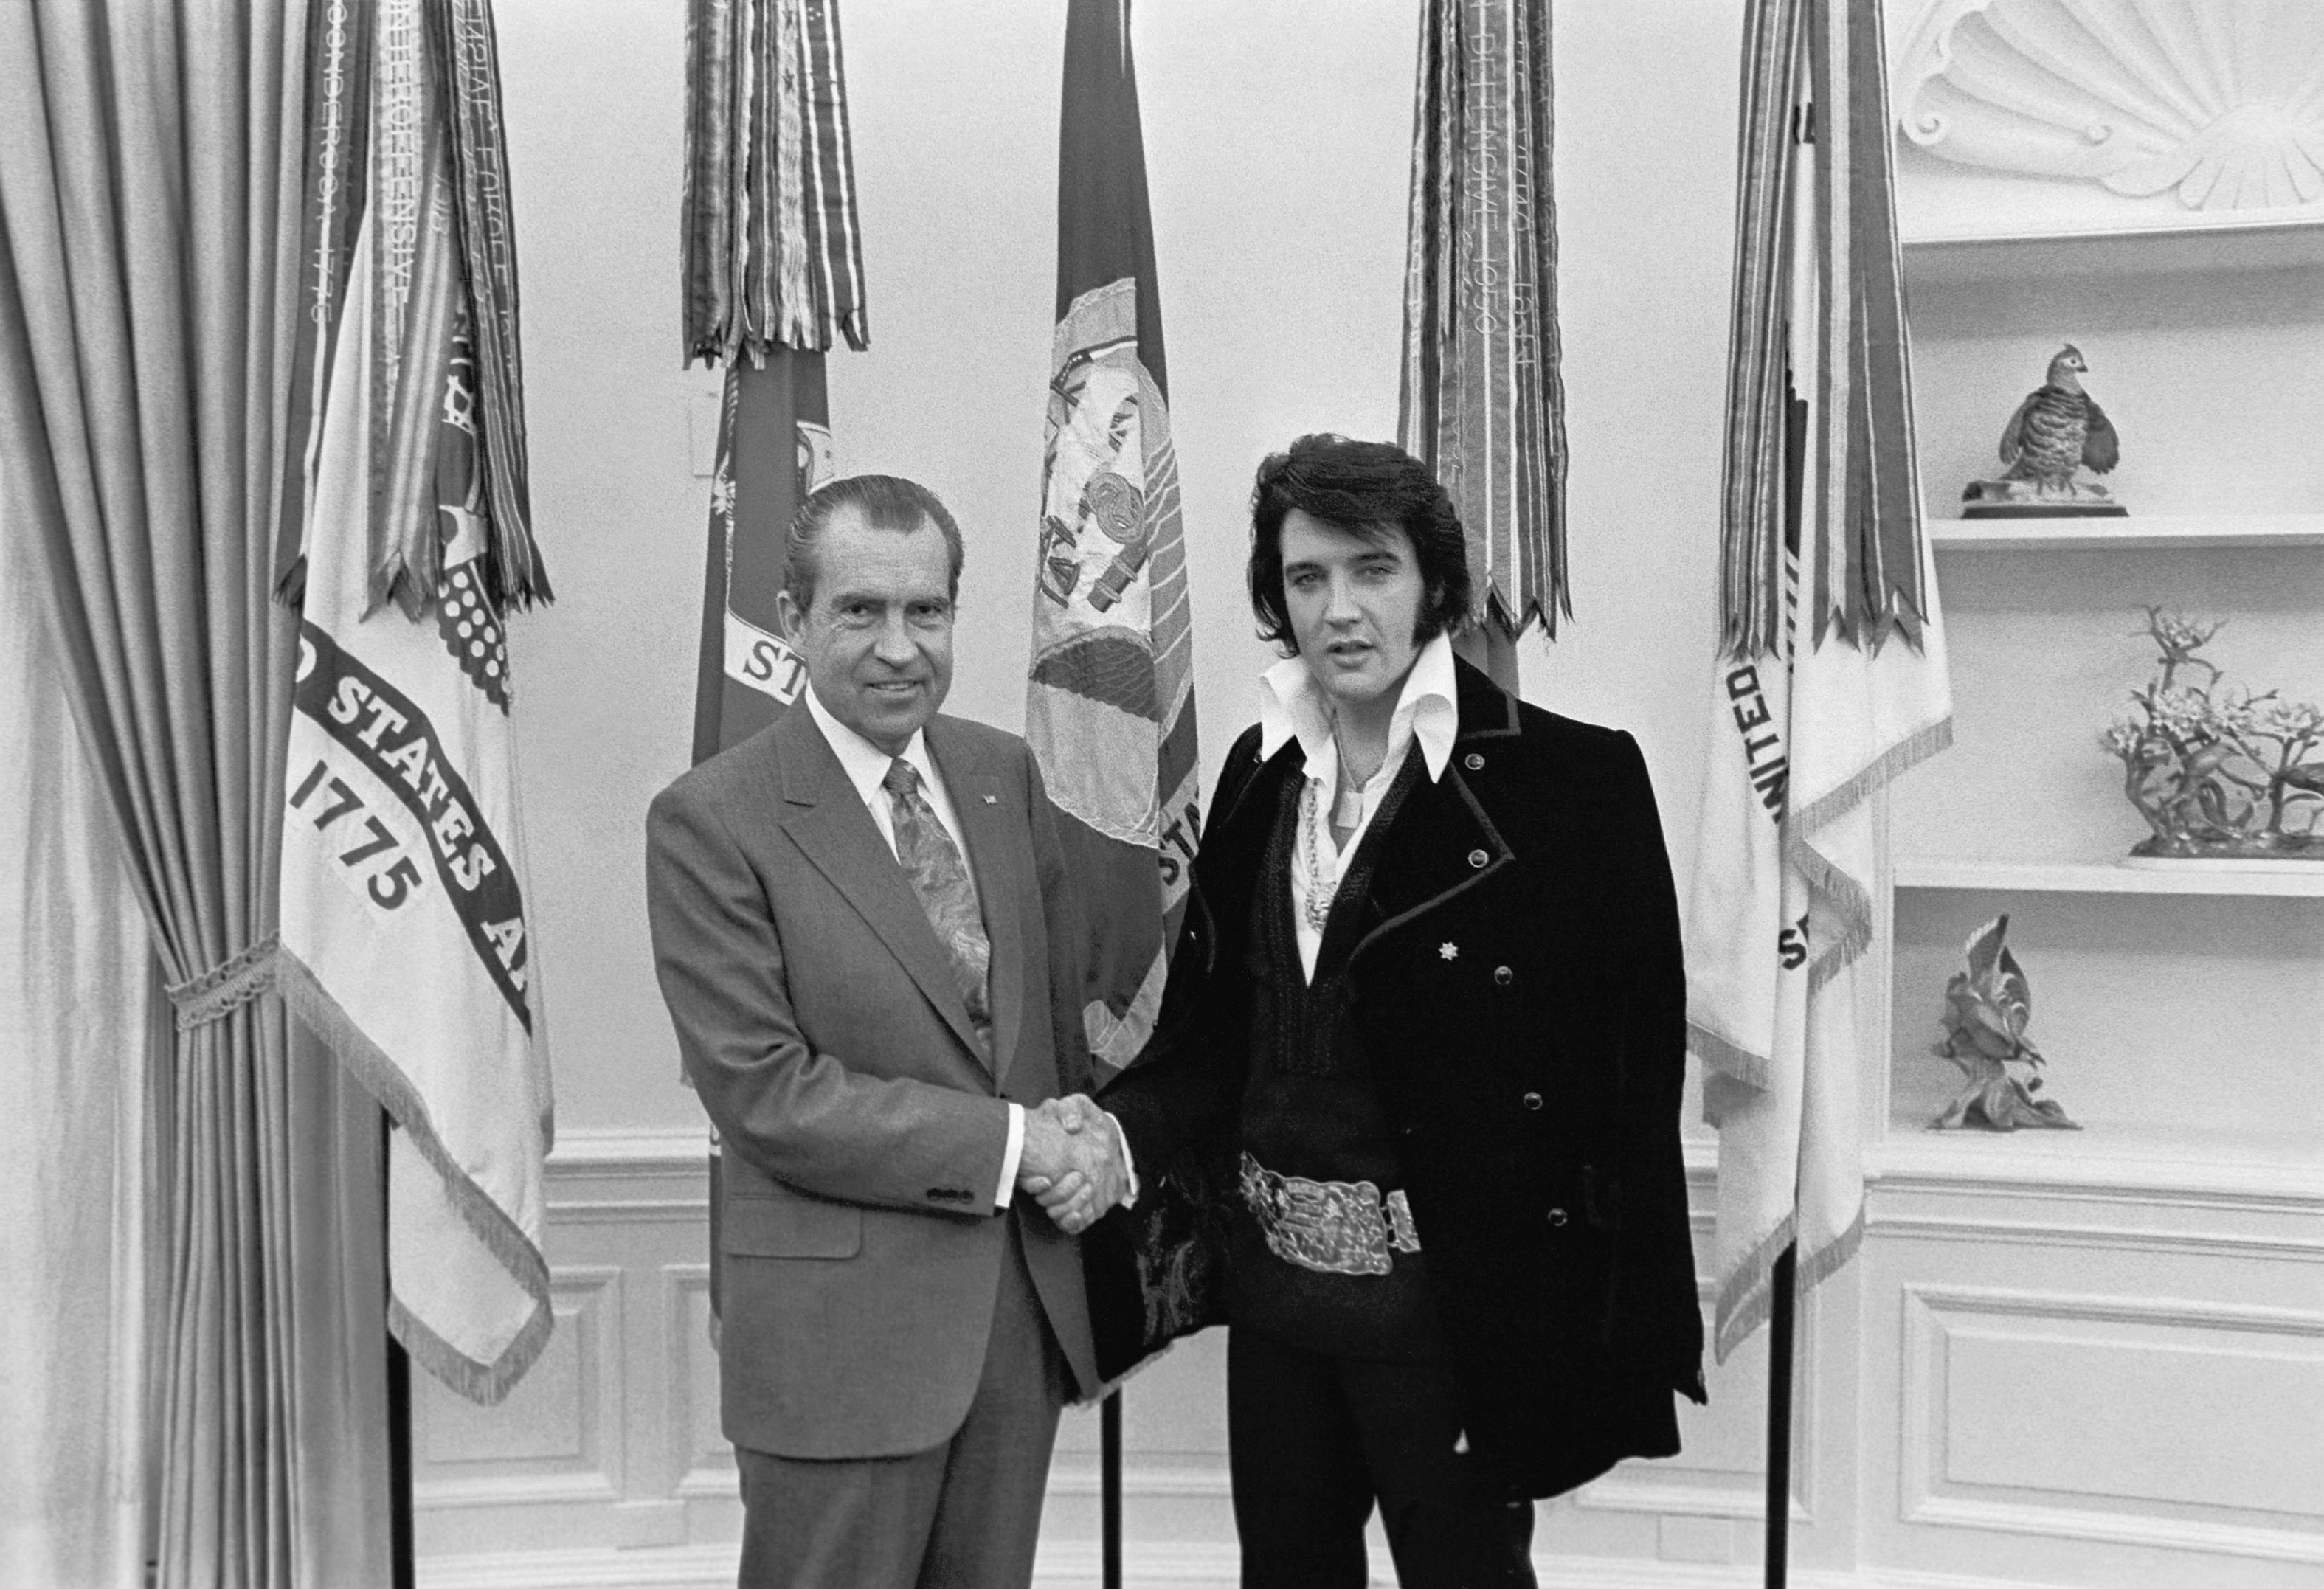 Popular image Nixon and Presley's meeting on January 27, 1972. Source: U.S. National Archives.